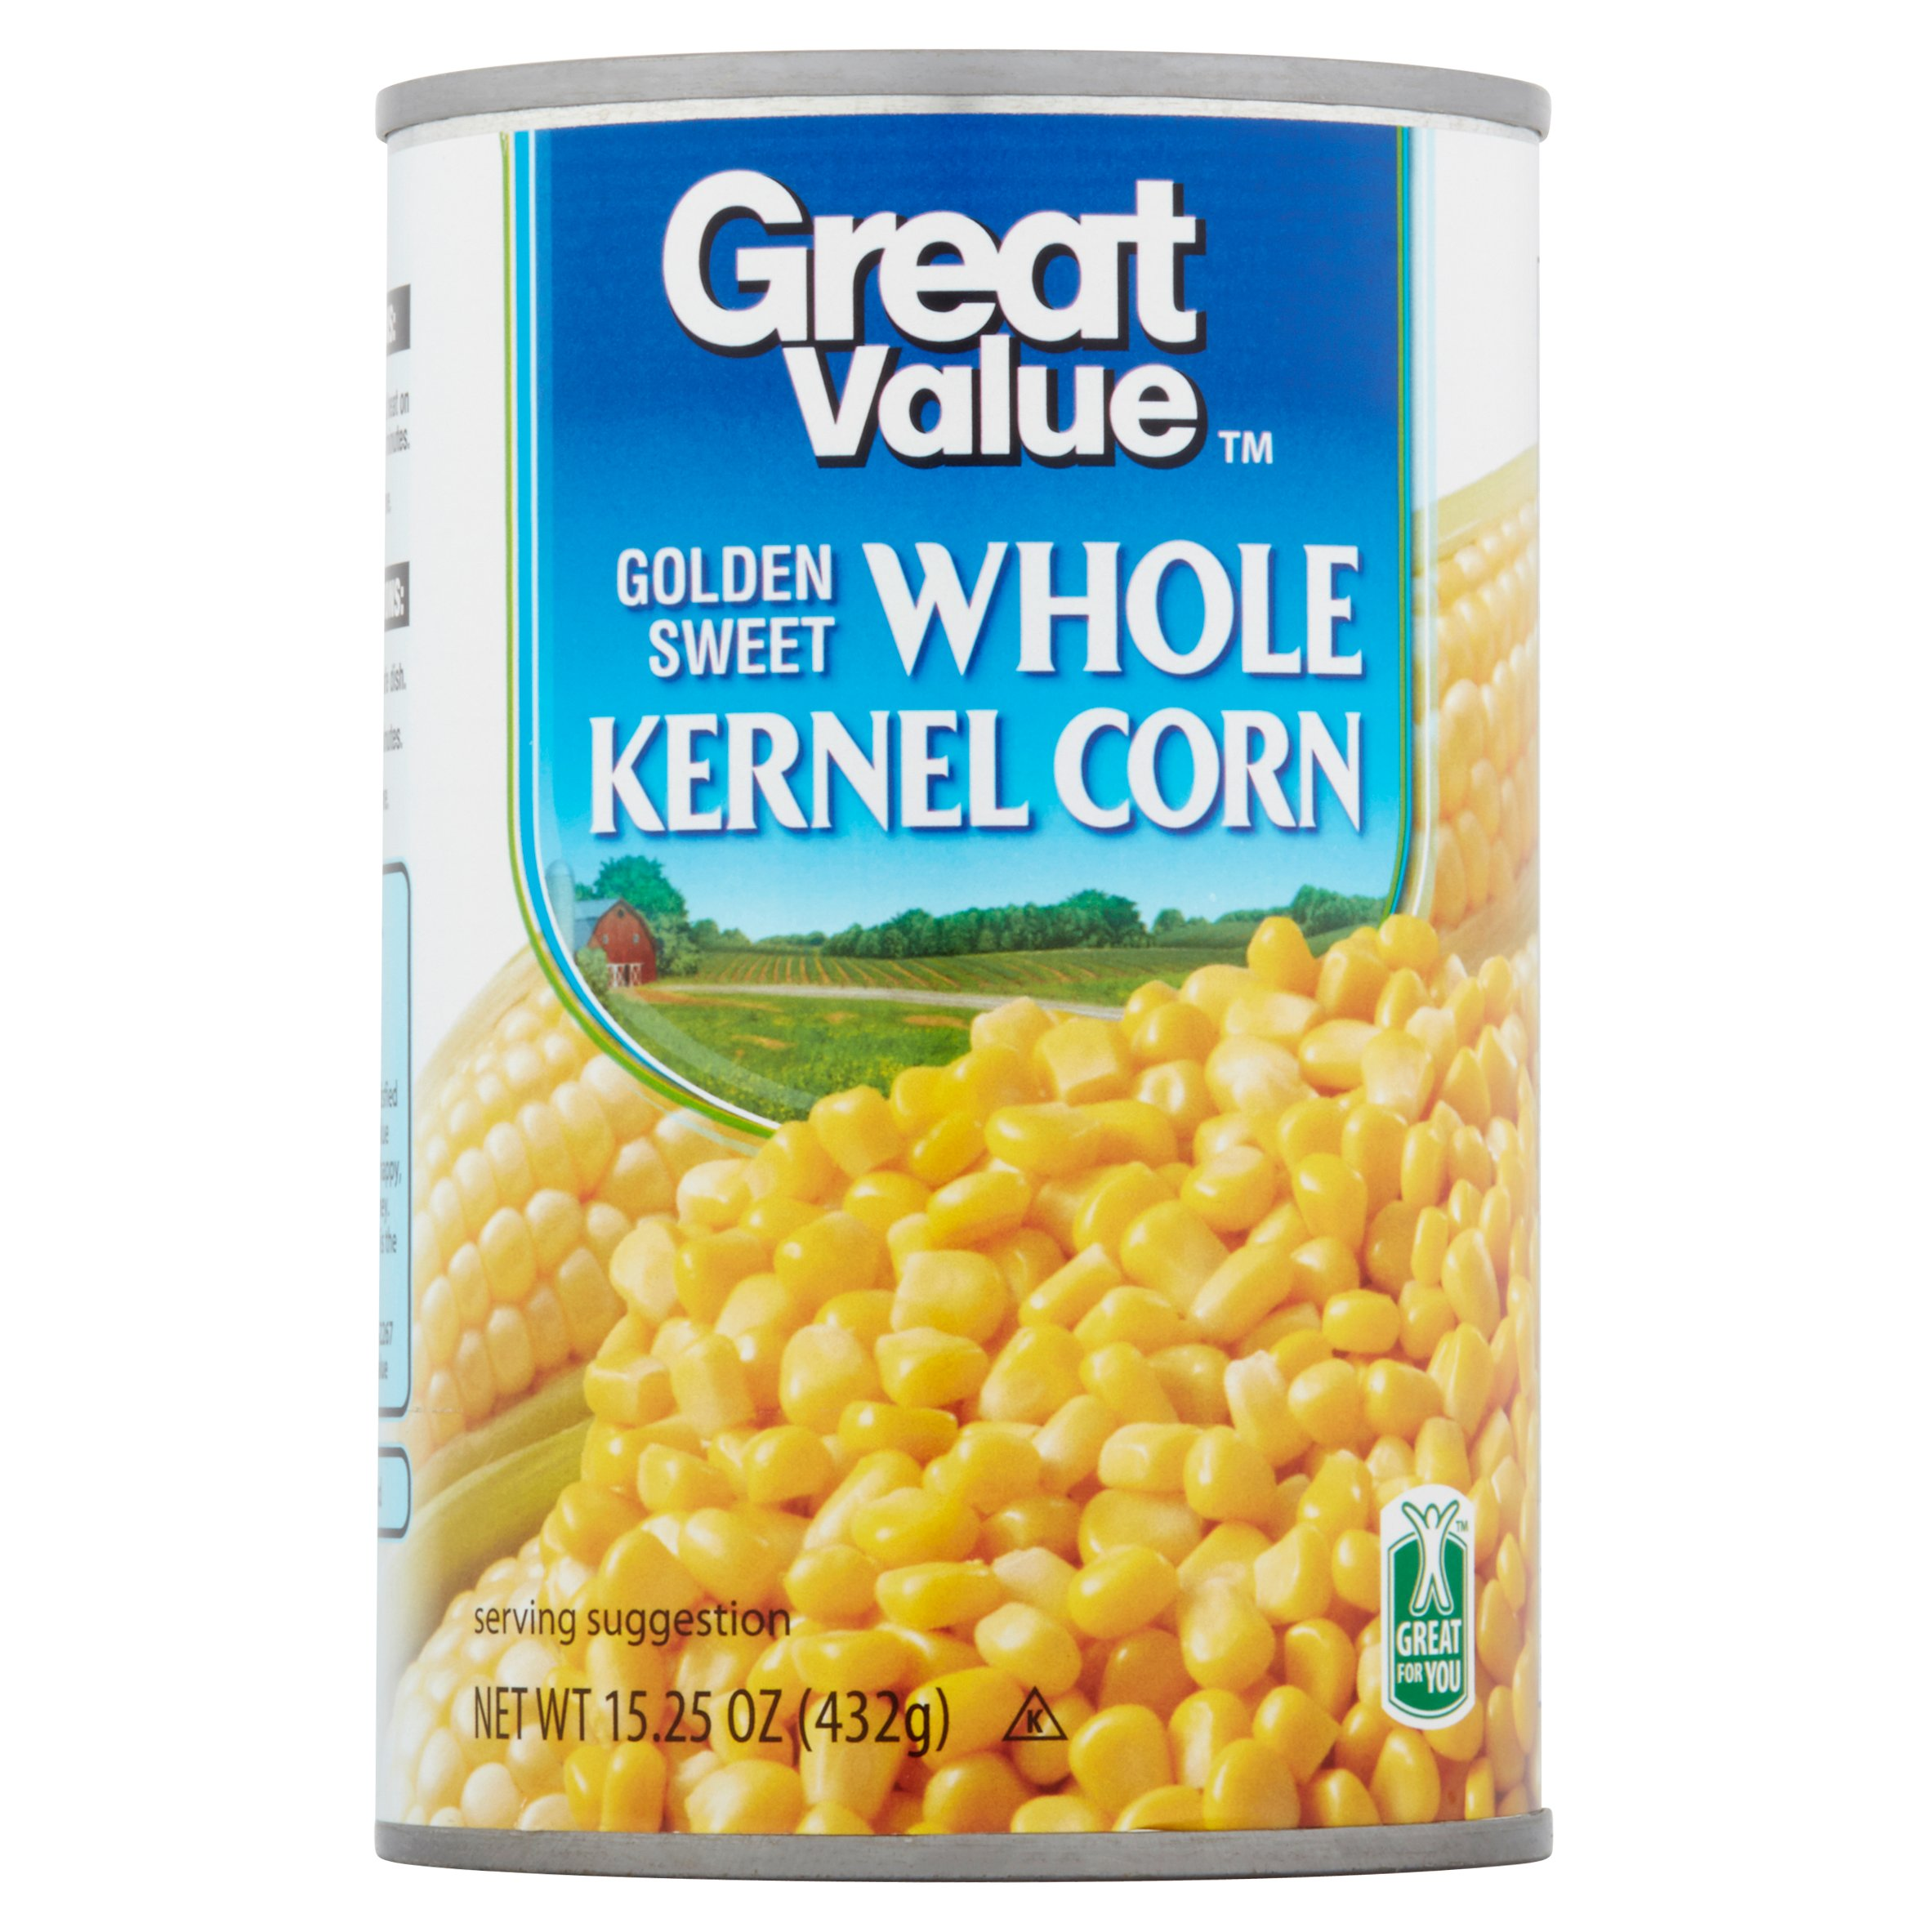 Great Value Golden Sweet Whole Kernel Corn, 15 oz